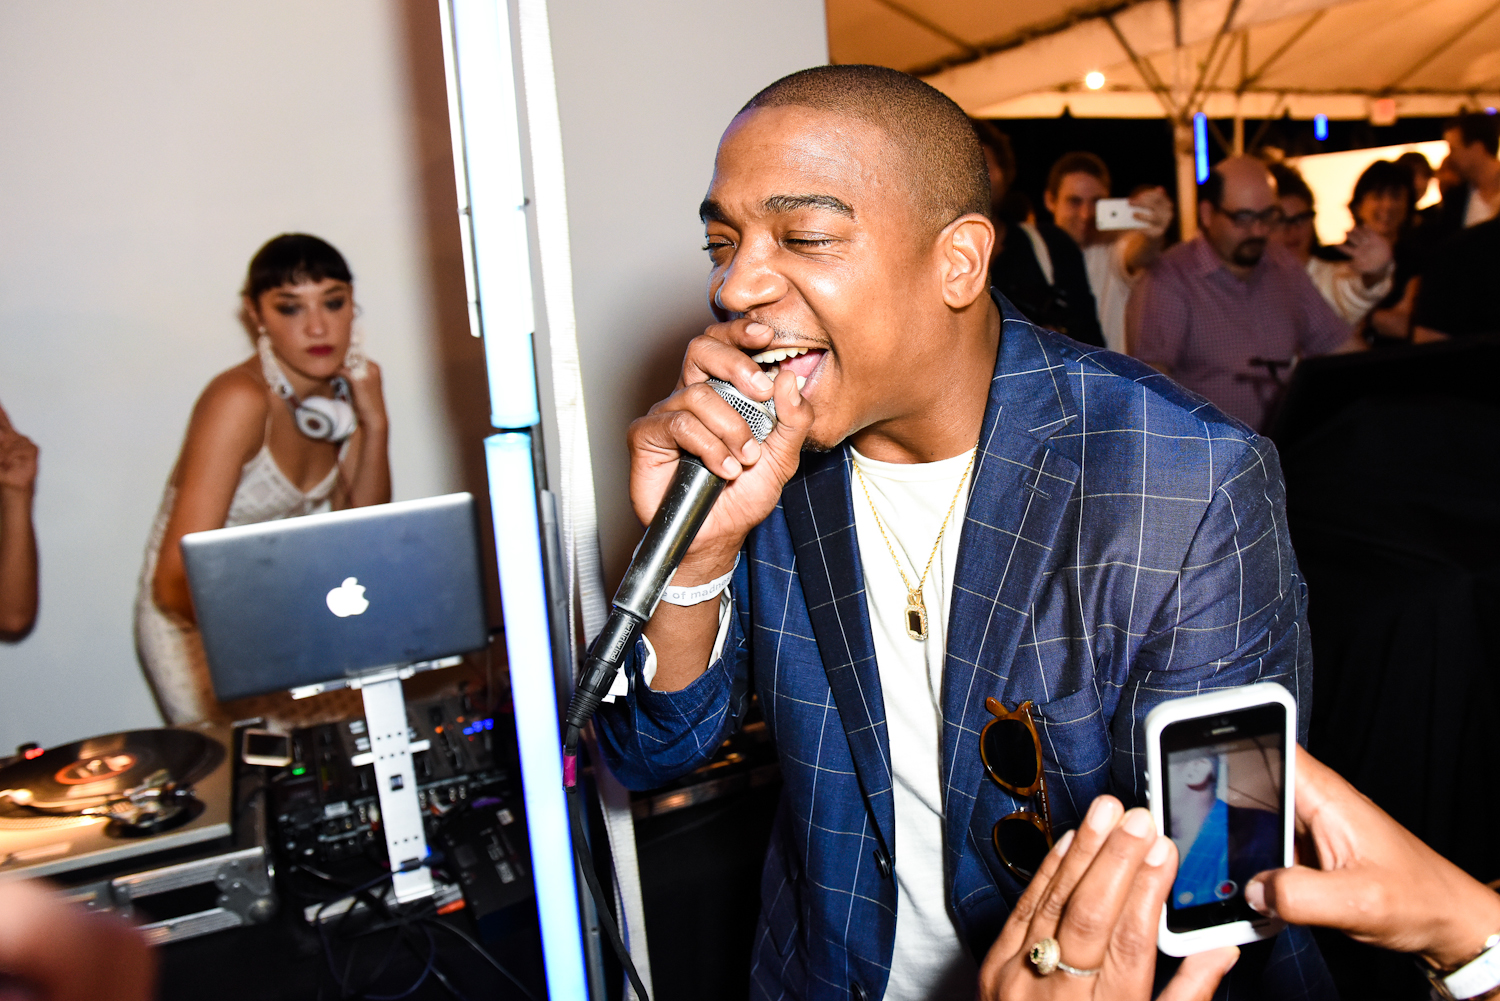 Watermill Center - Fada: House of Madness - Annual Benefit 2016 - Ja Rule - Photo by BFA